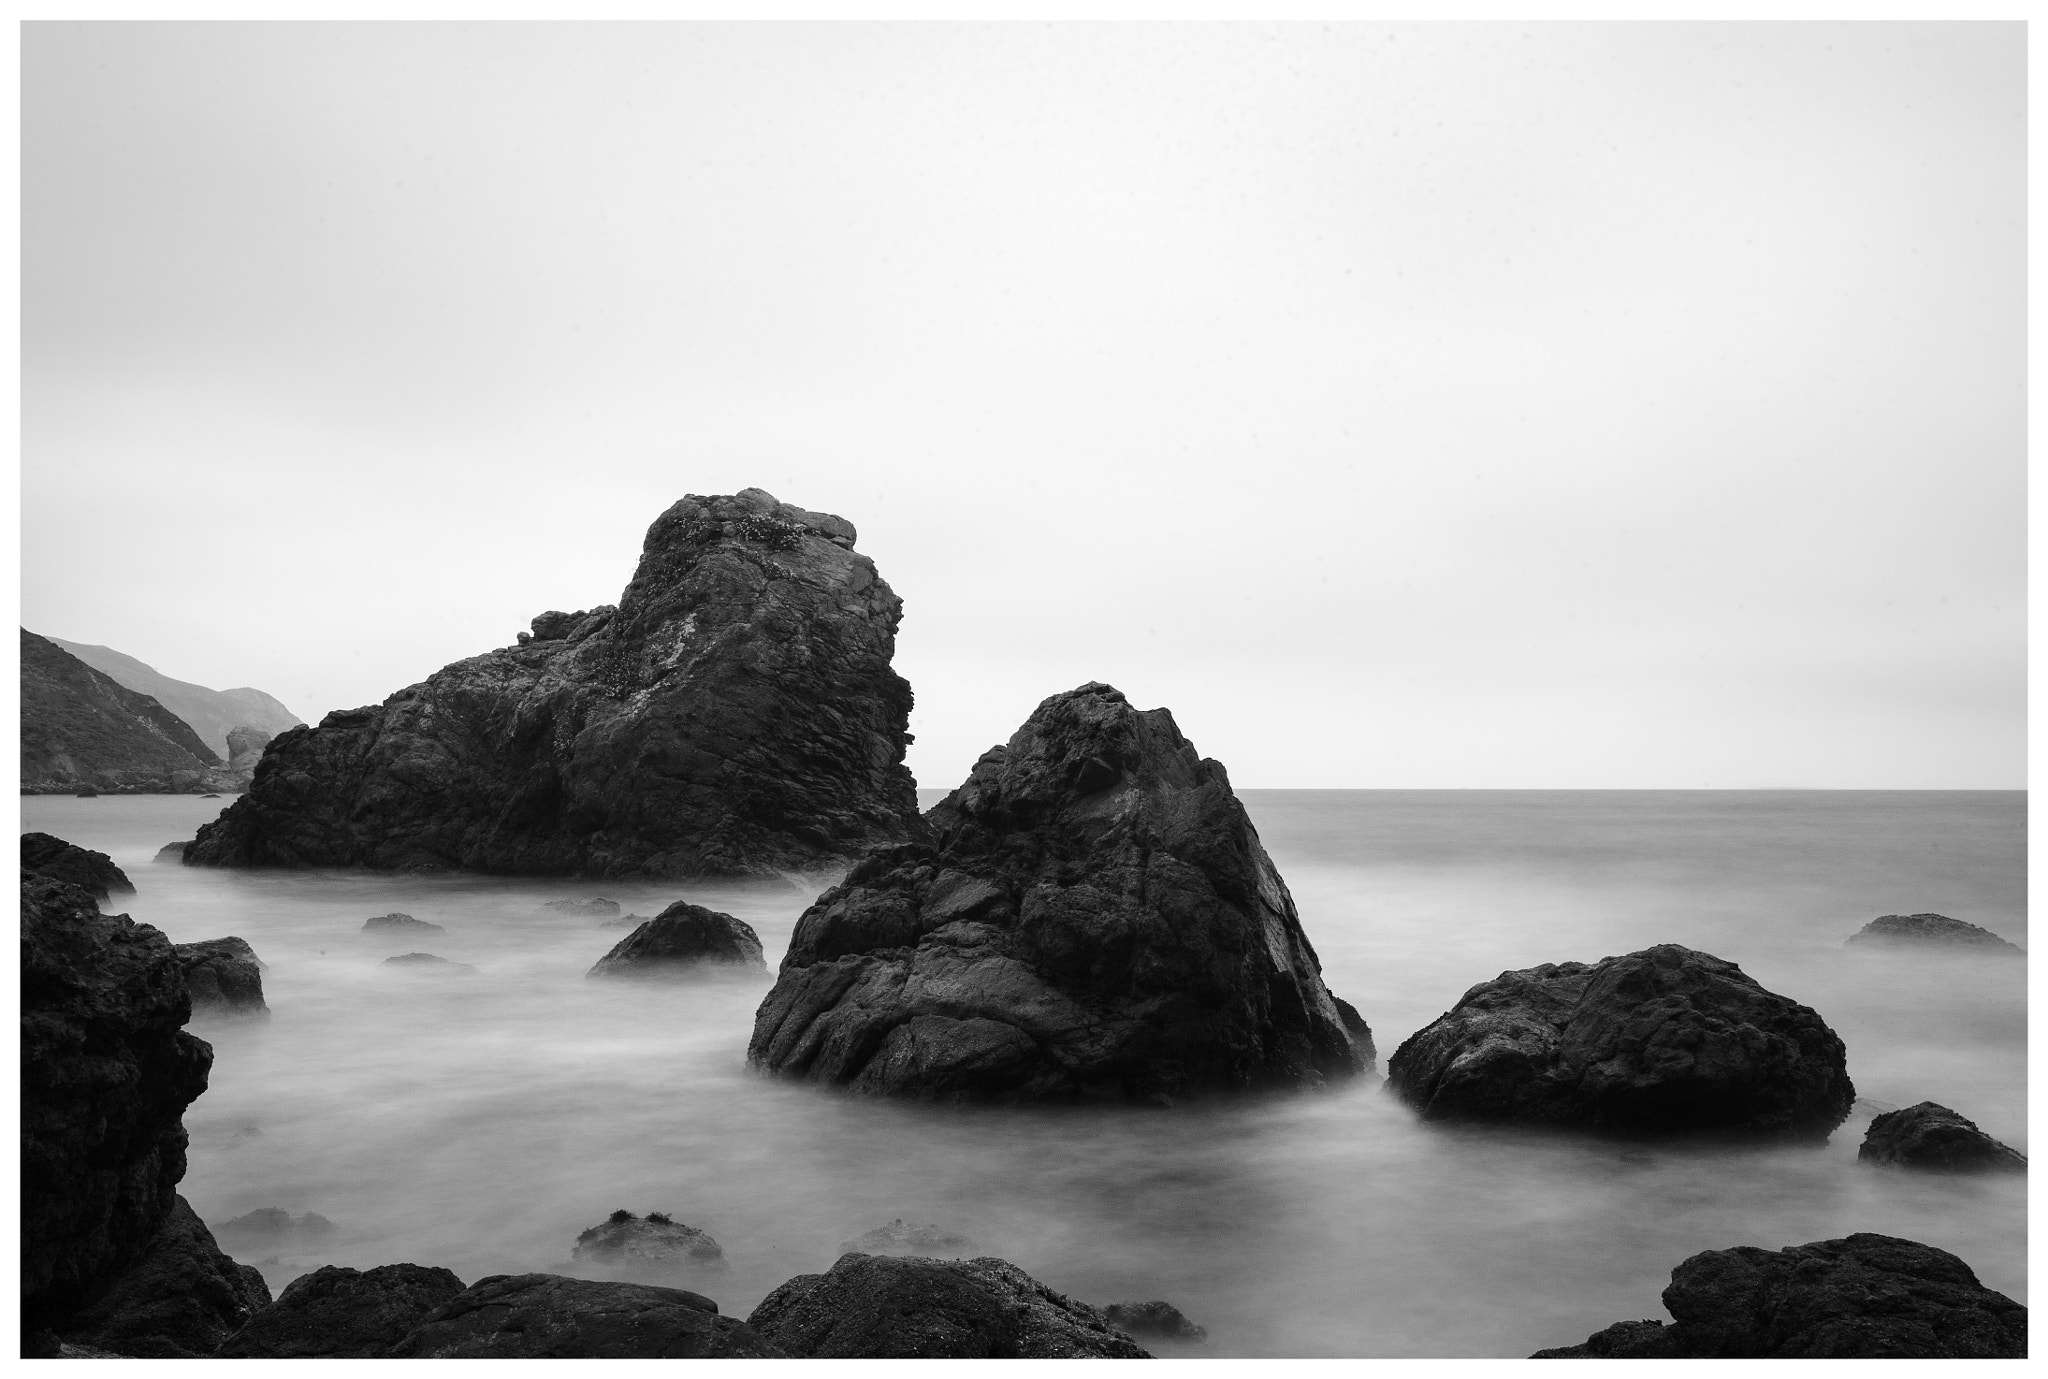 Photograph Muir Beach (III) by Michael Hocter on 500px